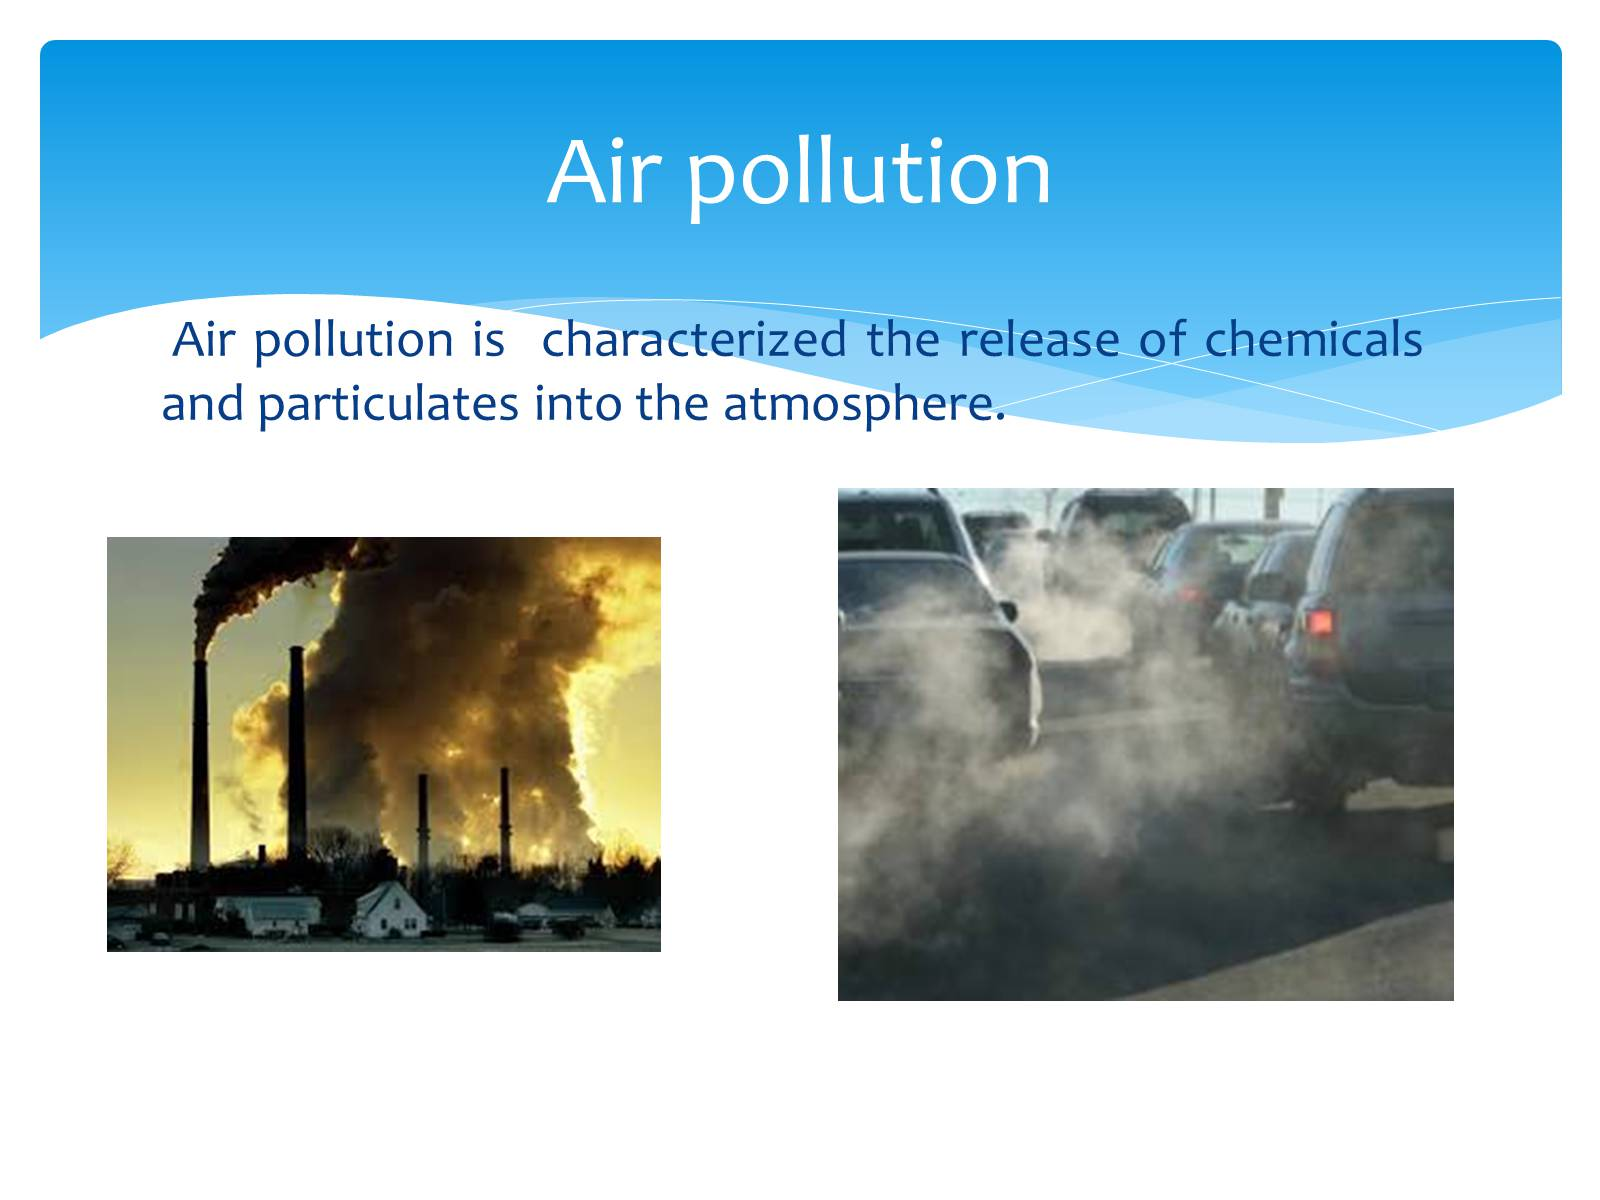 an essay on the air pollution problem in china